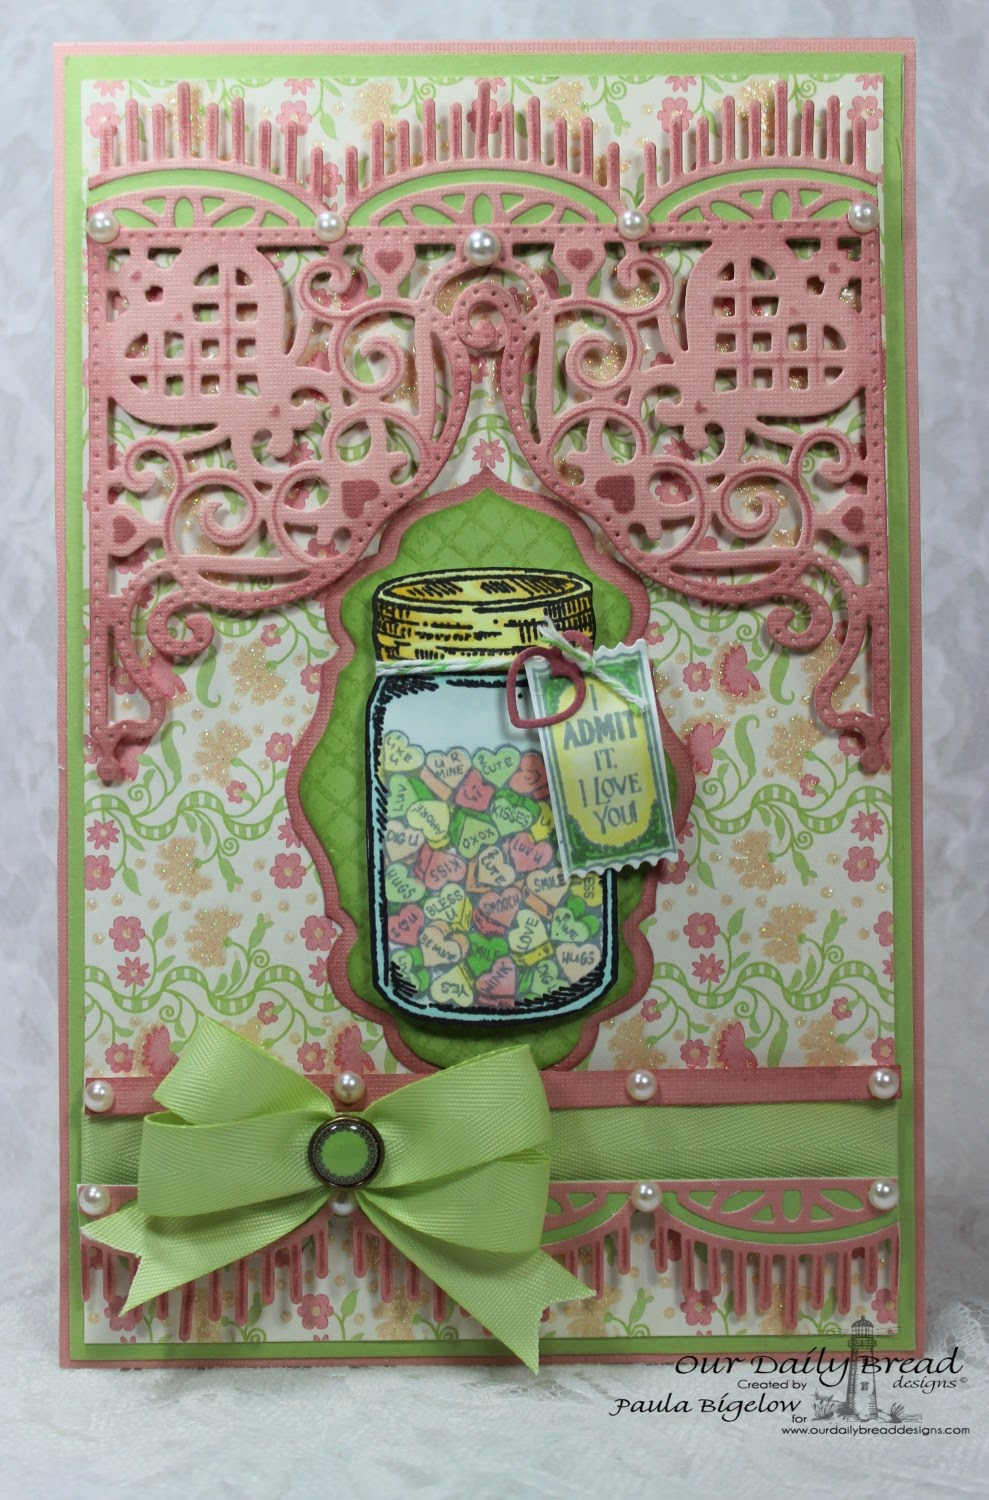 Our Daily Bread Designs, Blue Ribbon Winner, Canning Jar Fillers, Free Admission,Chalkboard Lattice Background, Beautiful Borders Dies, Decorative Corners Dies, Antique Labels and Borders Dies, Canning Jars Dies, Mini Tag Dies, Designed by Paula Bigelow